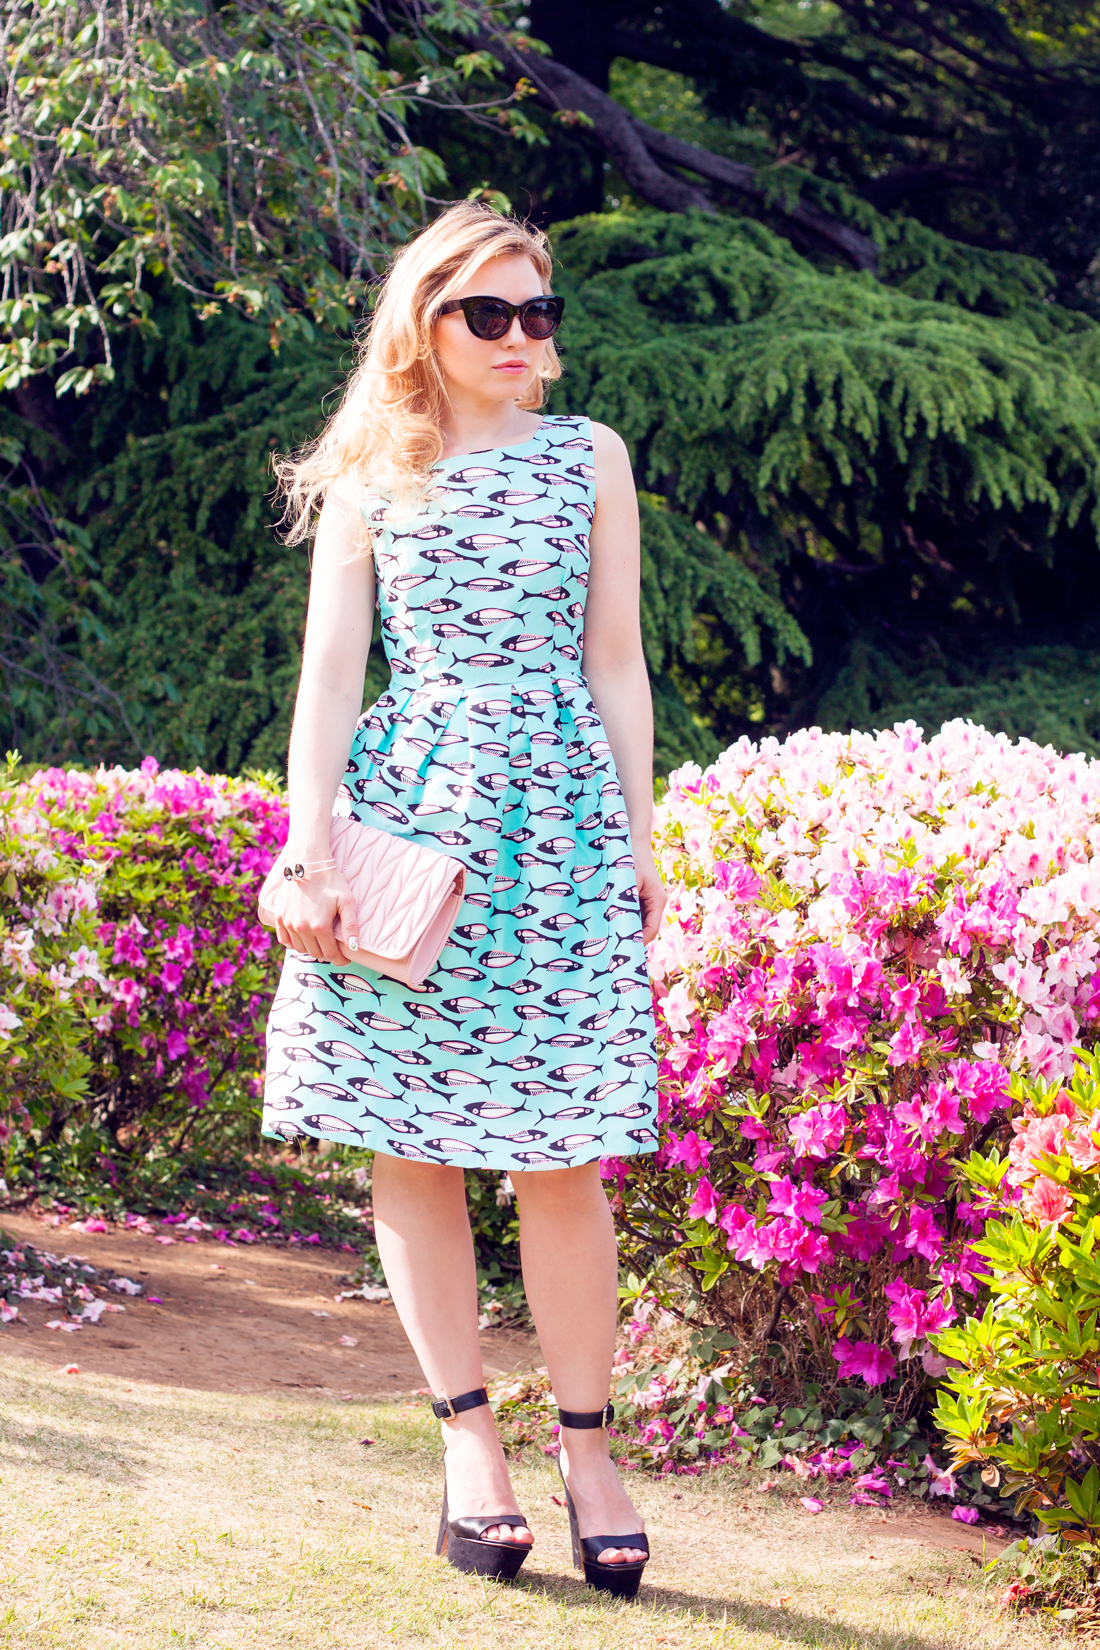 shinjuku gyoen national park, japanese garden , azaleas, fish print dress, cat sunglasses, pink quilted handbag, japanese flowers, tokyo, japan, tokyo fashion